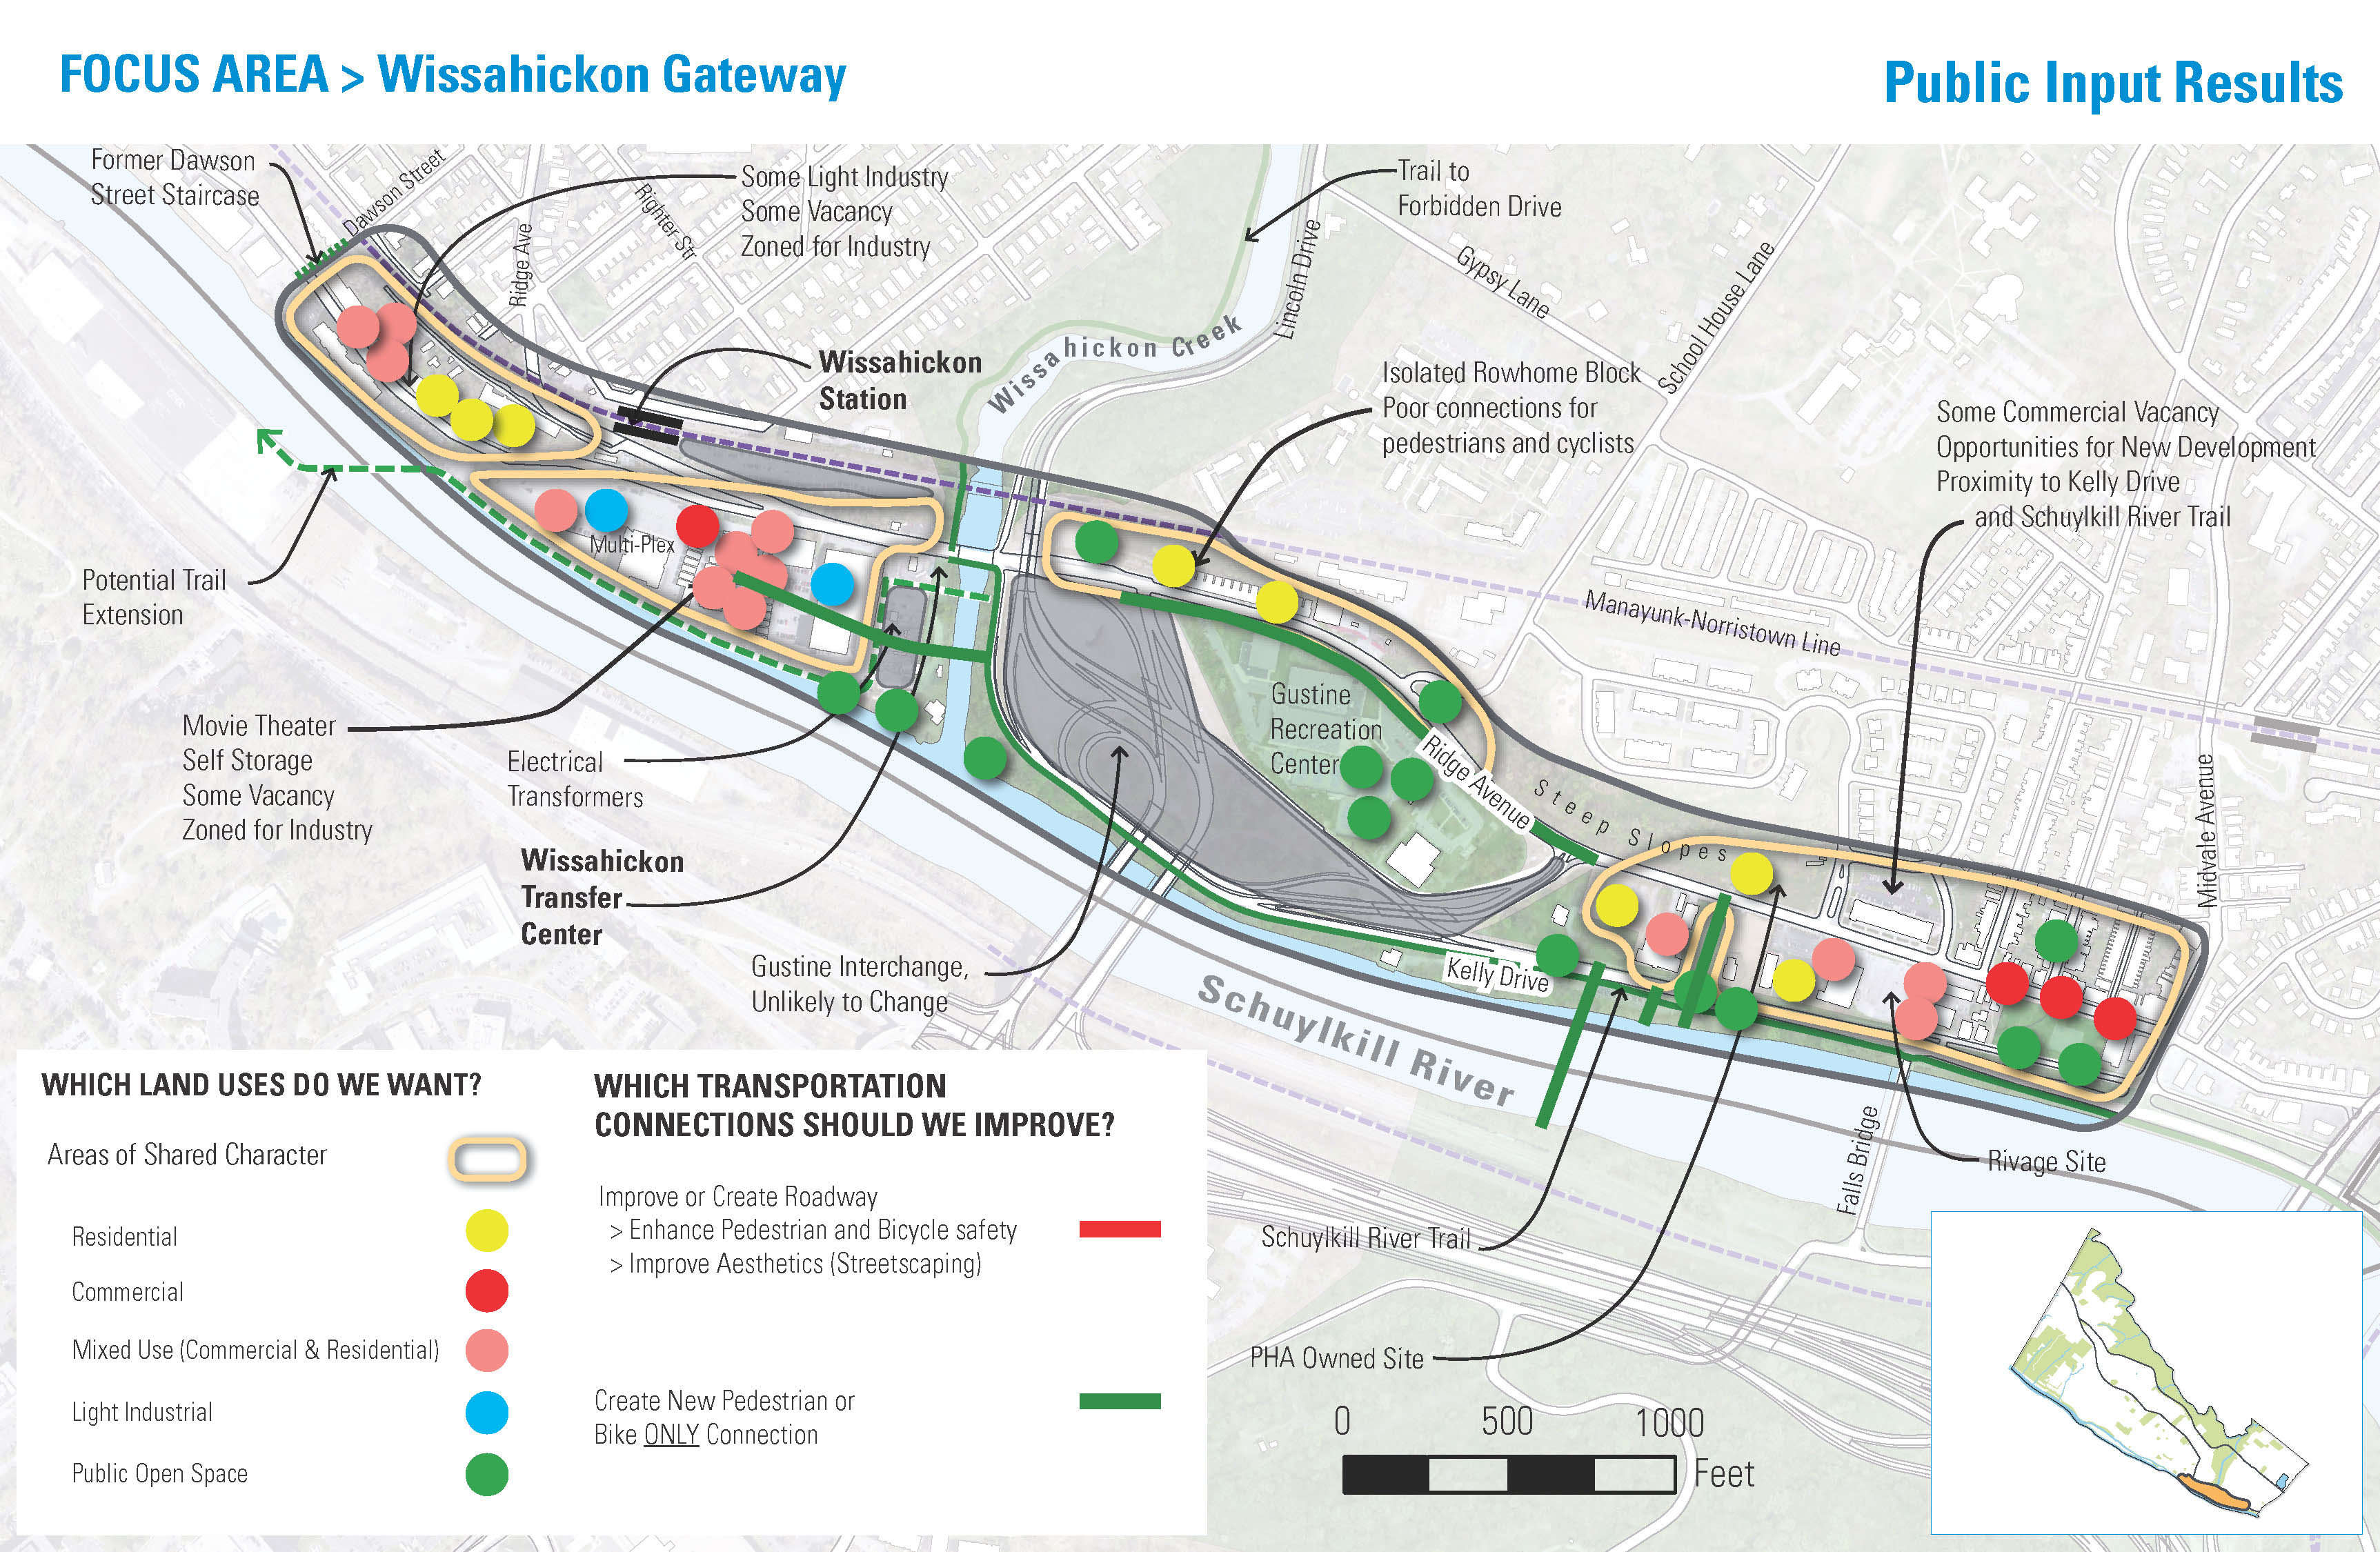 Visual summary of Lower Northwest input, Wissahickon Gateway